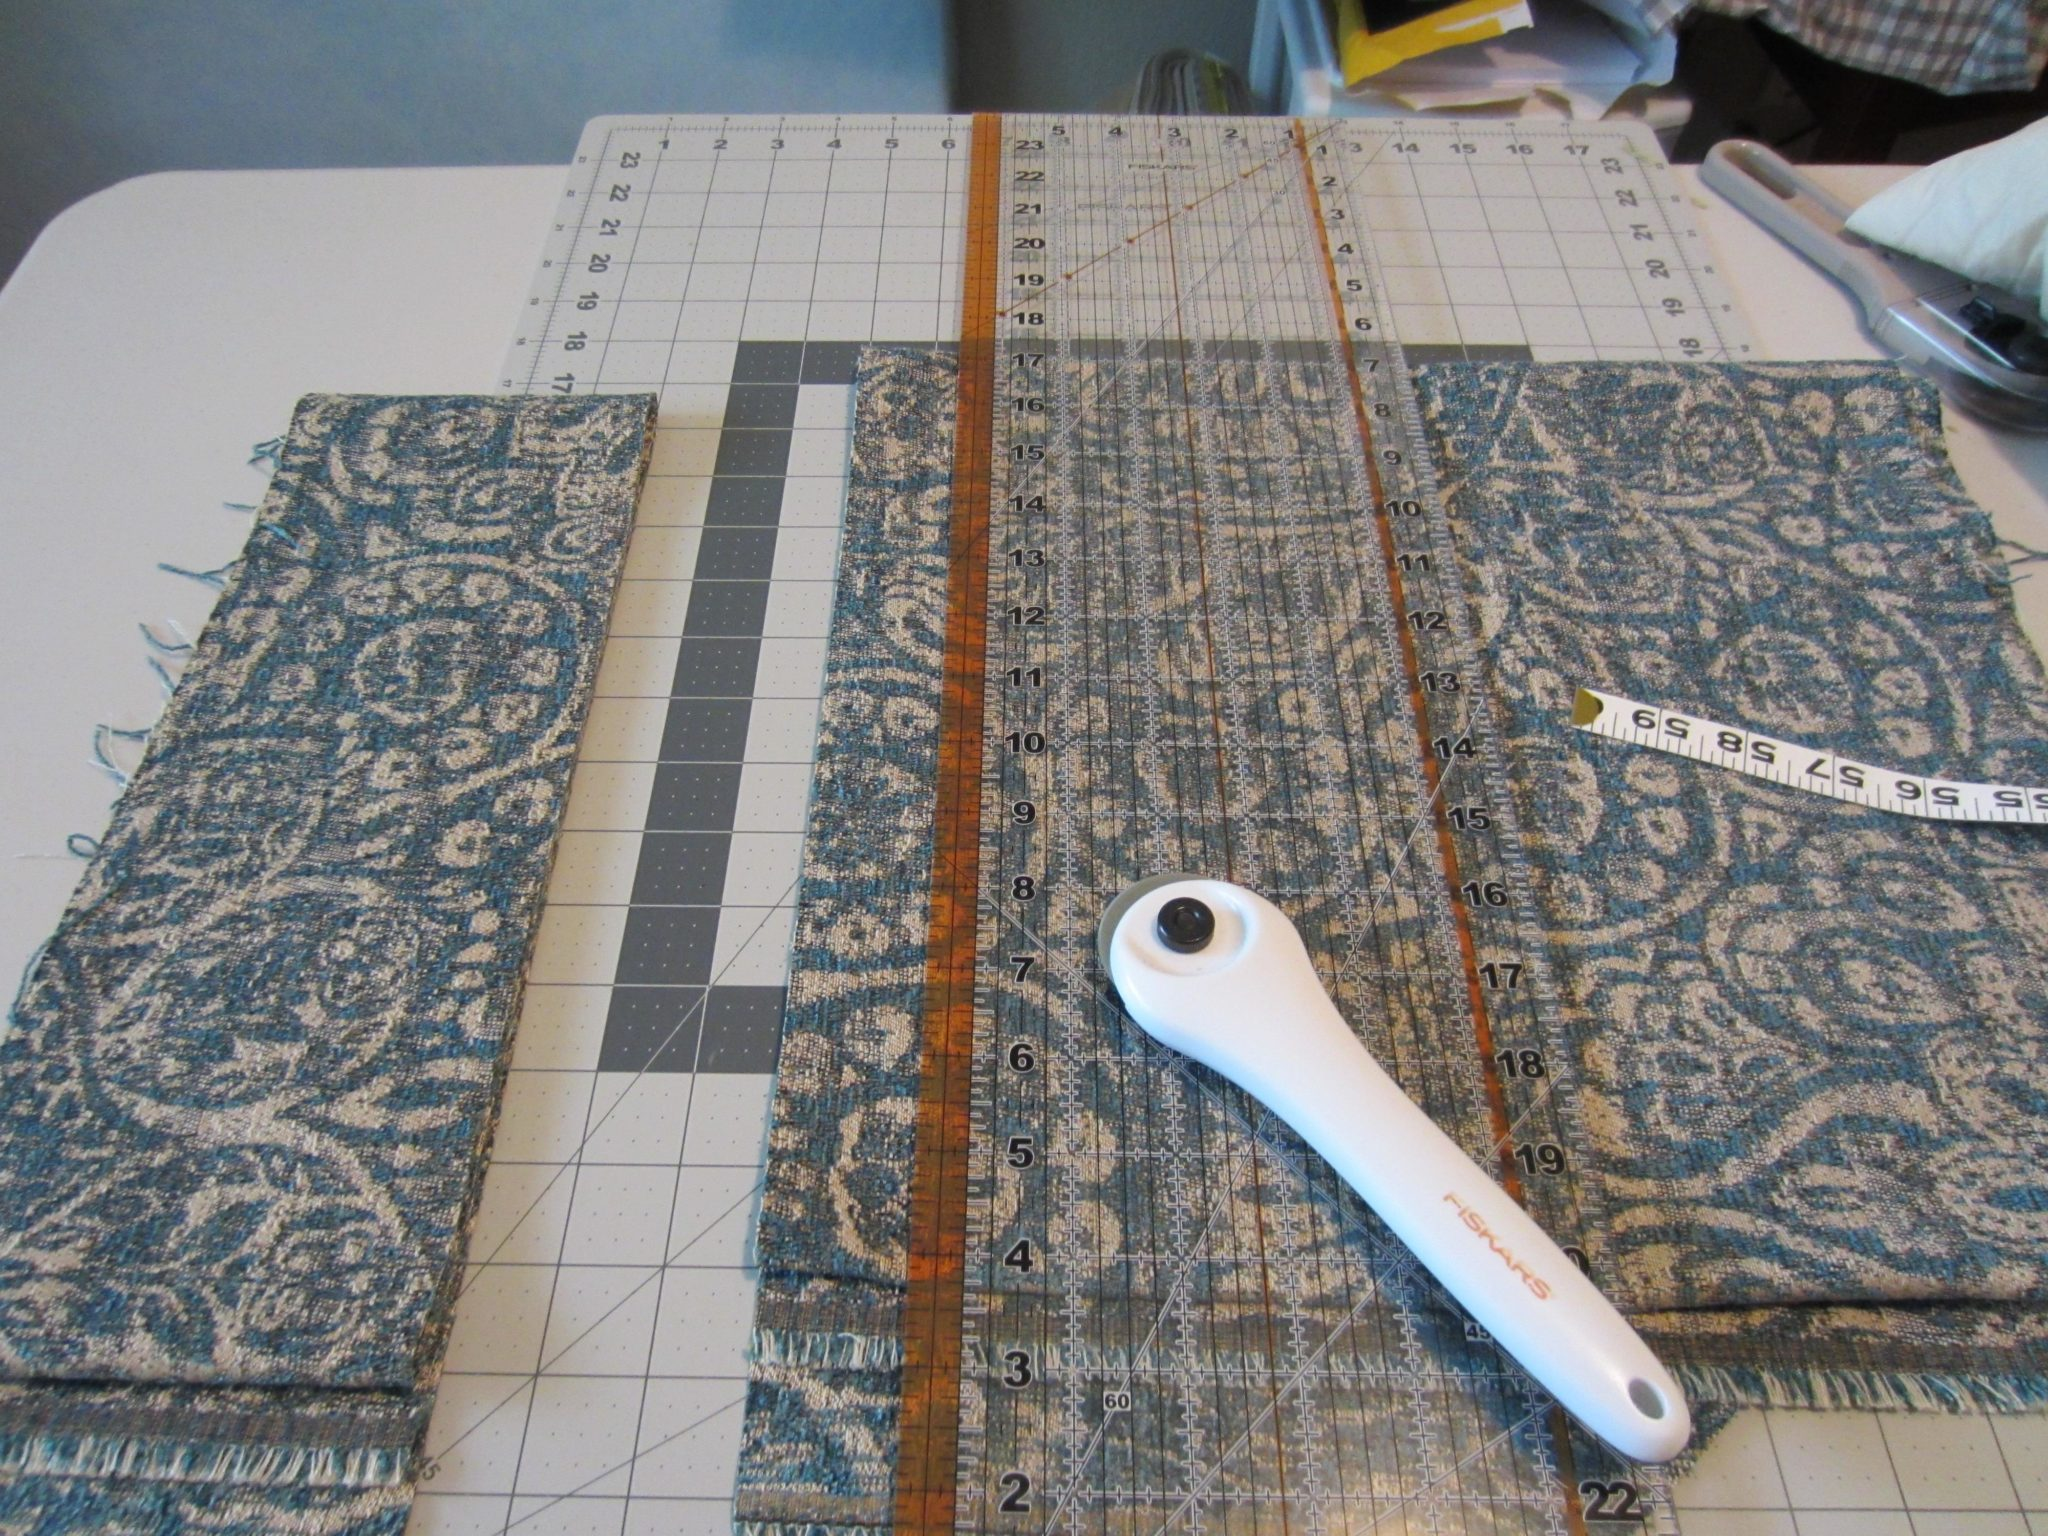 Cutting the fabric to finish the top